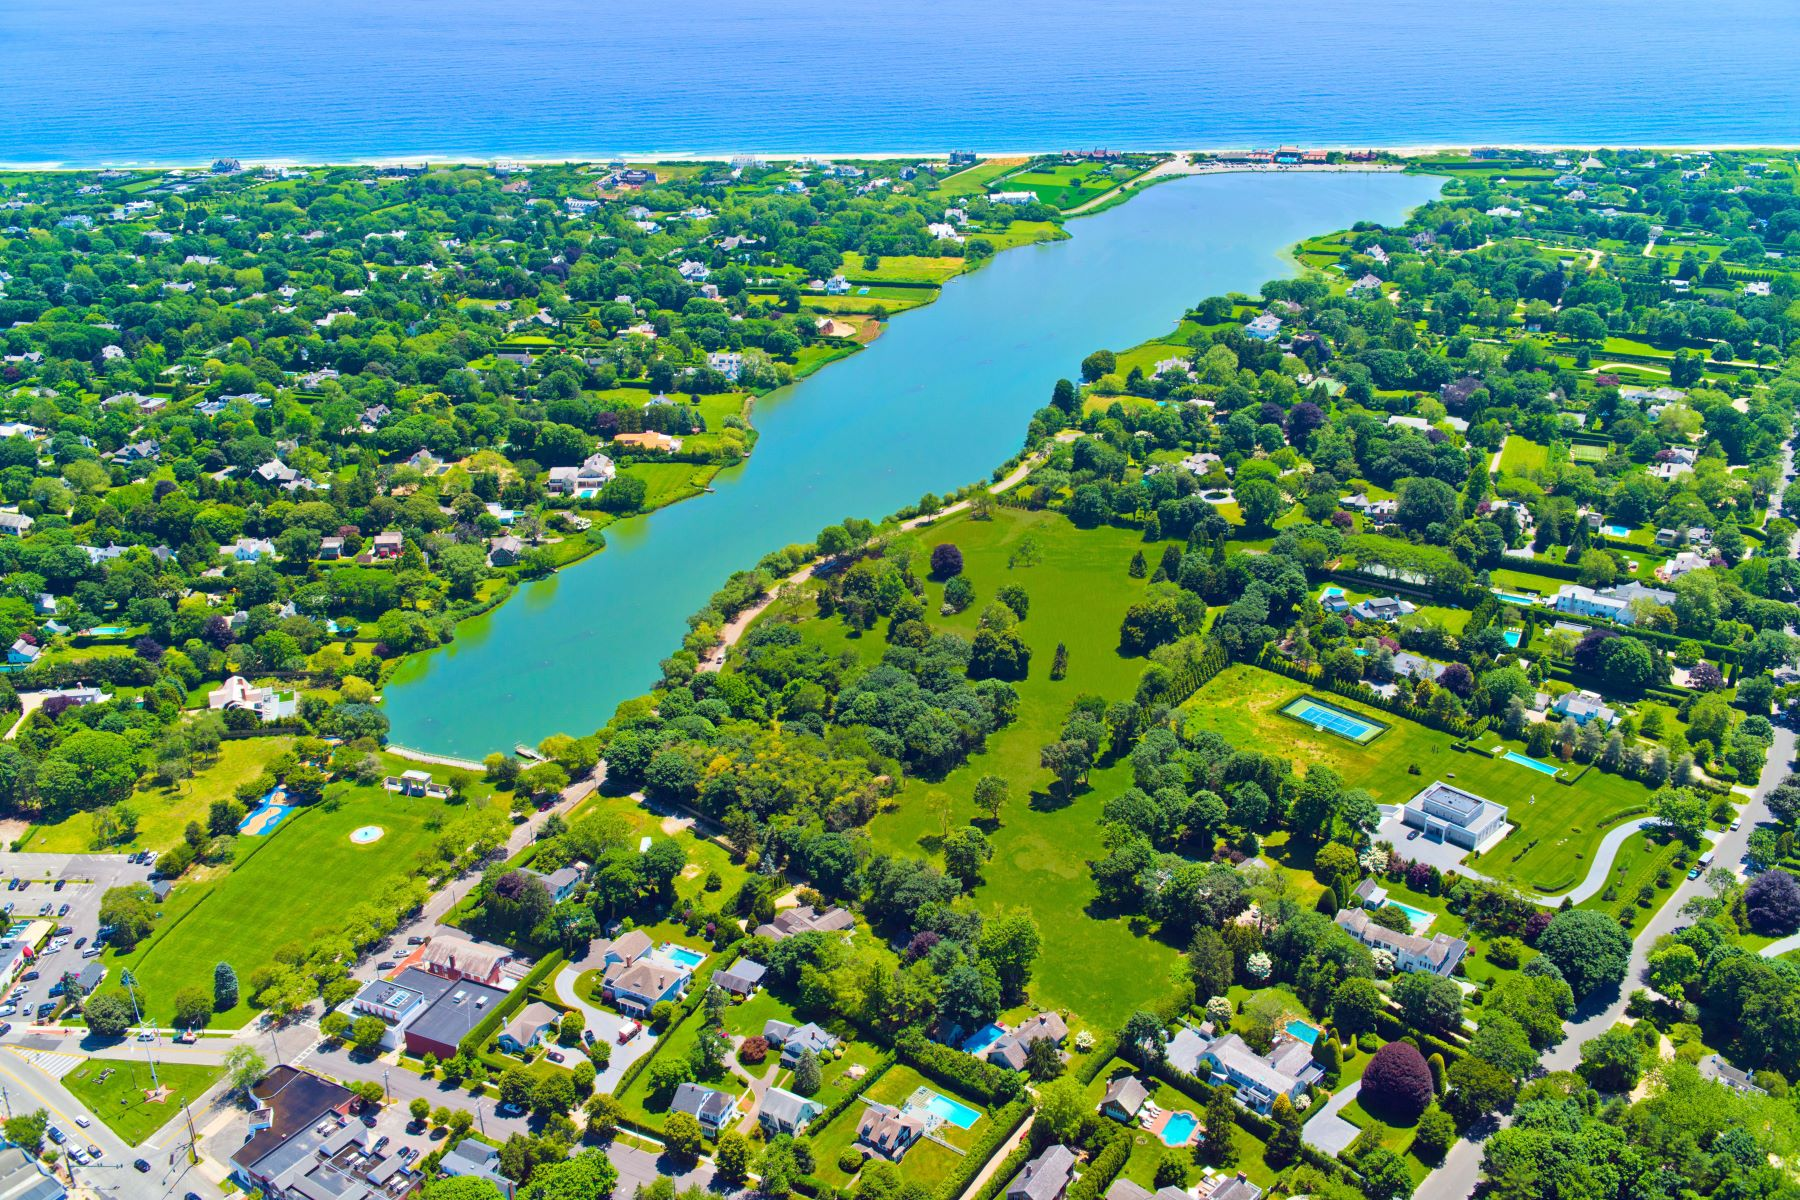 Single Family Homes for Sale at 137 & 153 Pond Lane 137 And 153 Pond Lane, Lots 4 And 5 Southampton, New York 11968 United States